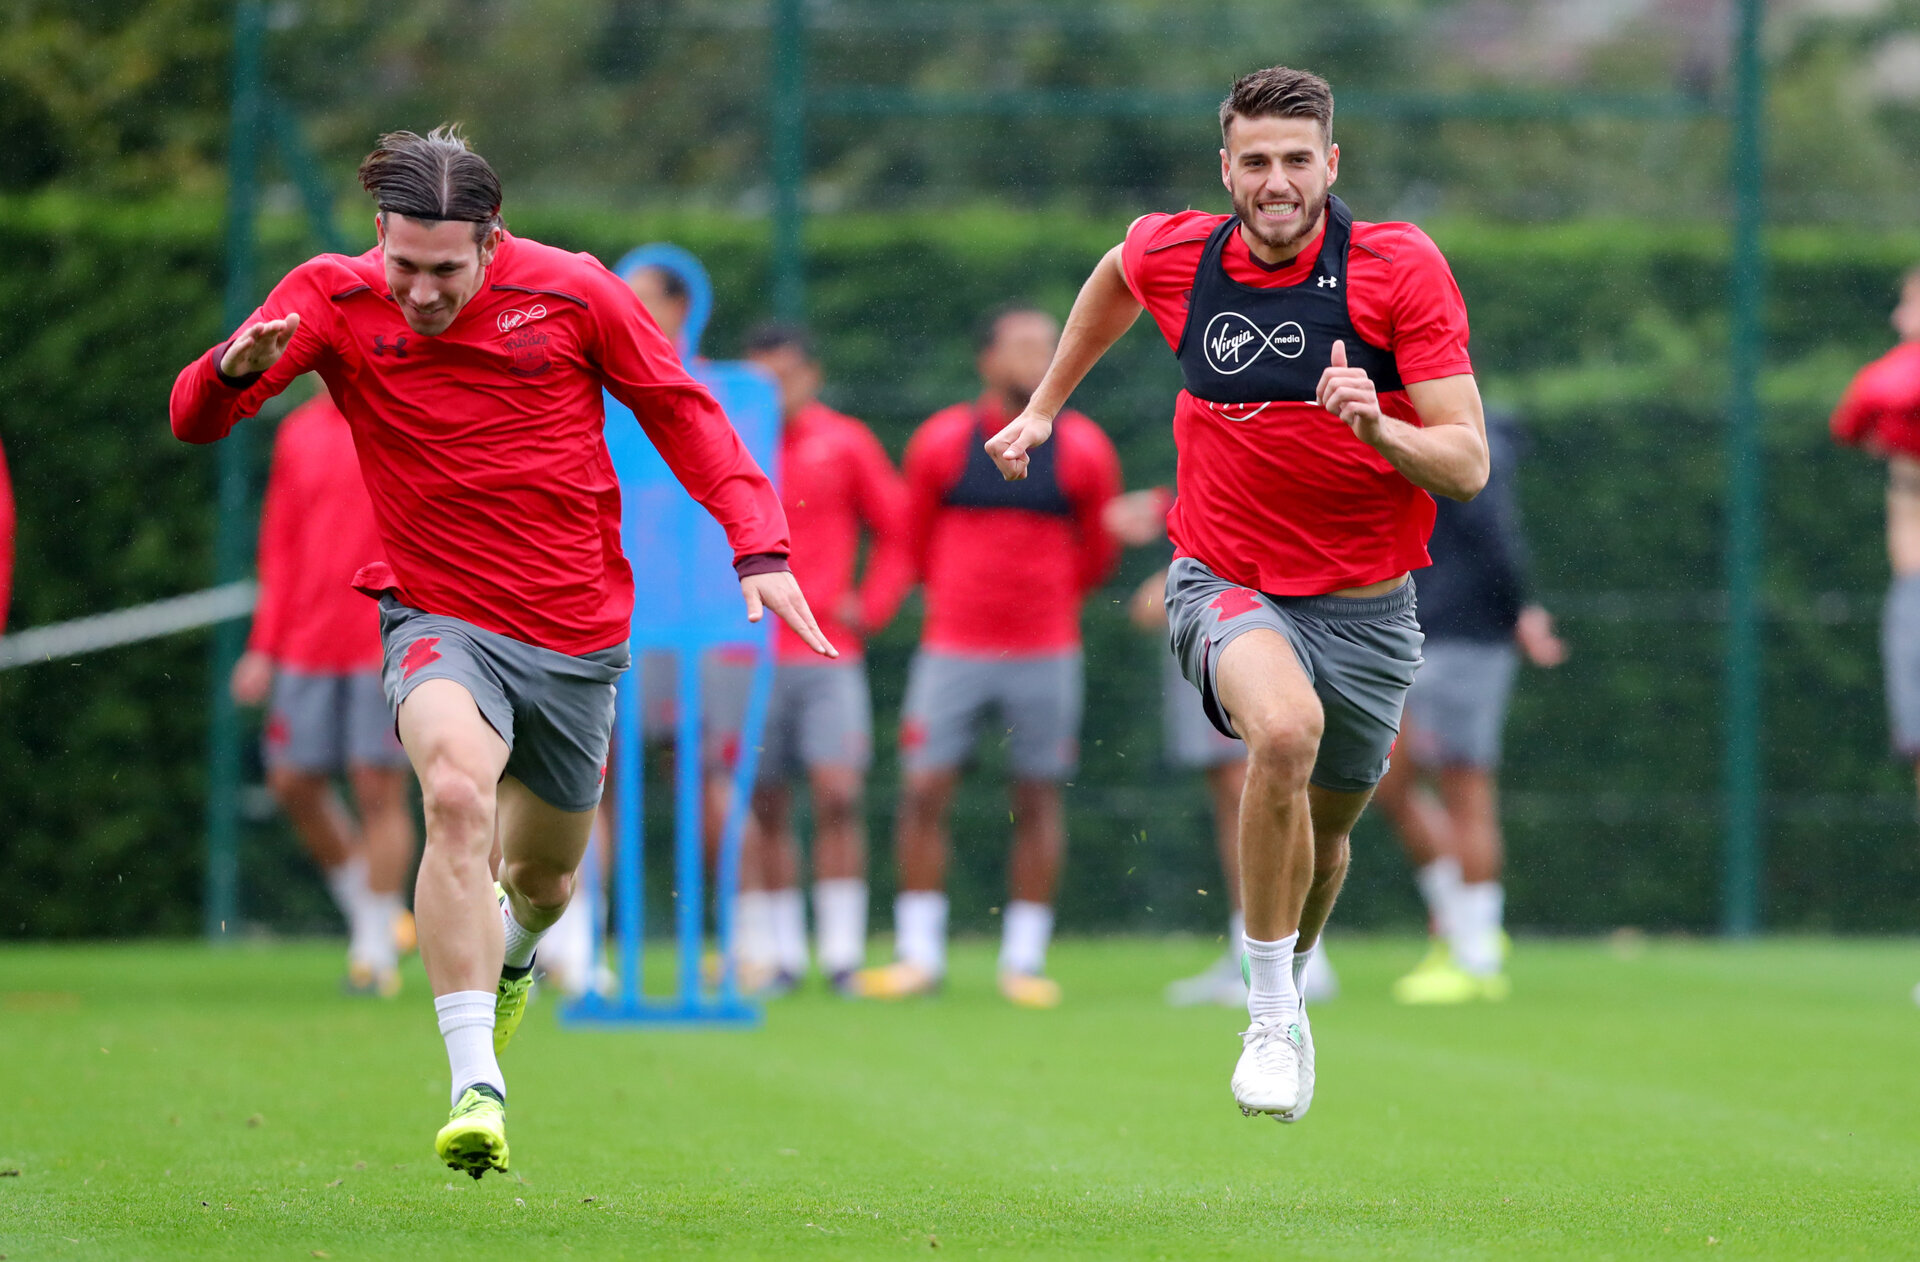 SOUTHAMPTON, ENGLAND - SEPTEMBER 21: Pierre-Emile Hojbjerg(left) and Wesley Hoedt during a Southampton FC training session at the Staplewood Campus on September 21, 2017 in Southampton, England. (Photo by Matt Watson/Southampton FC via Getty Images)